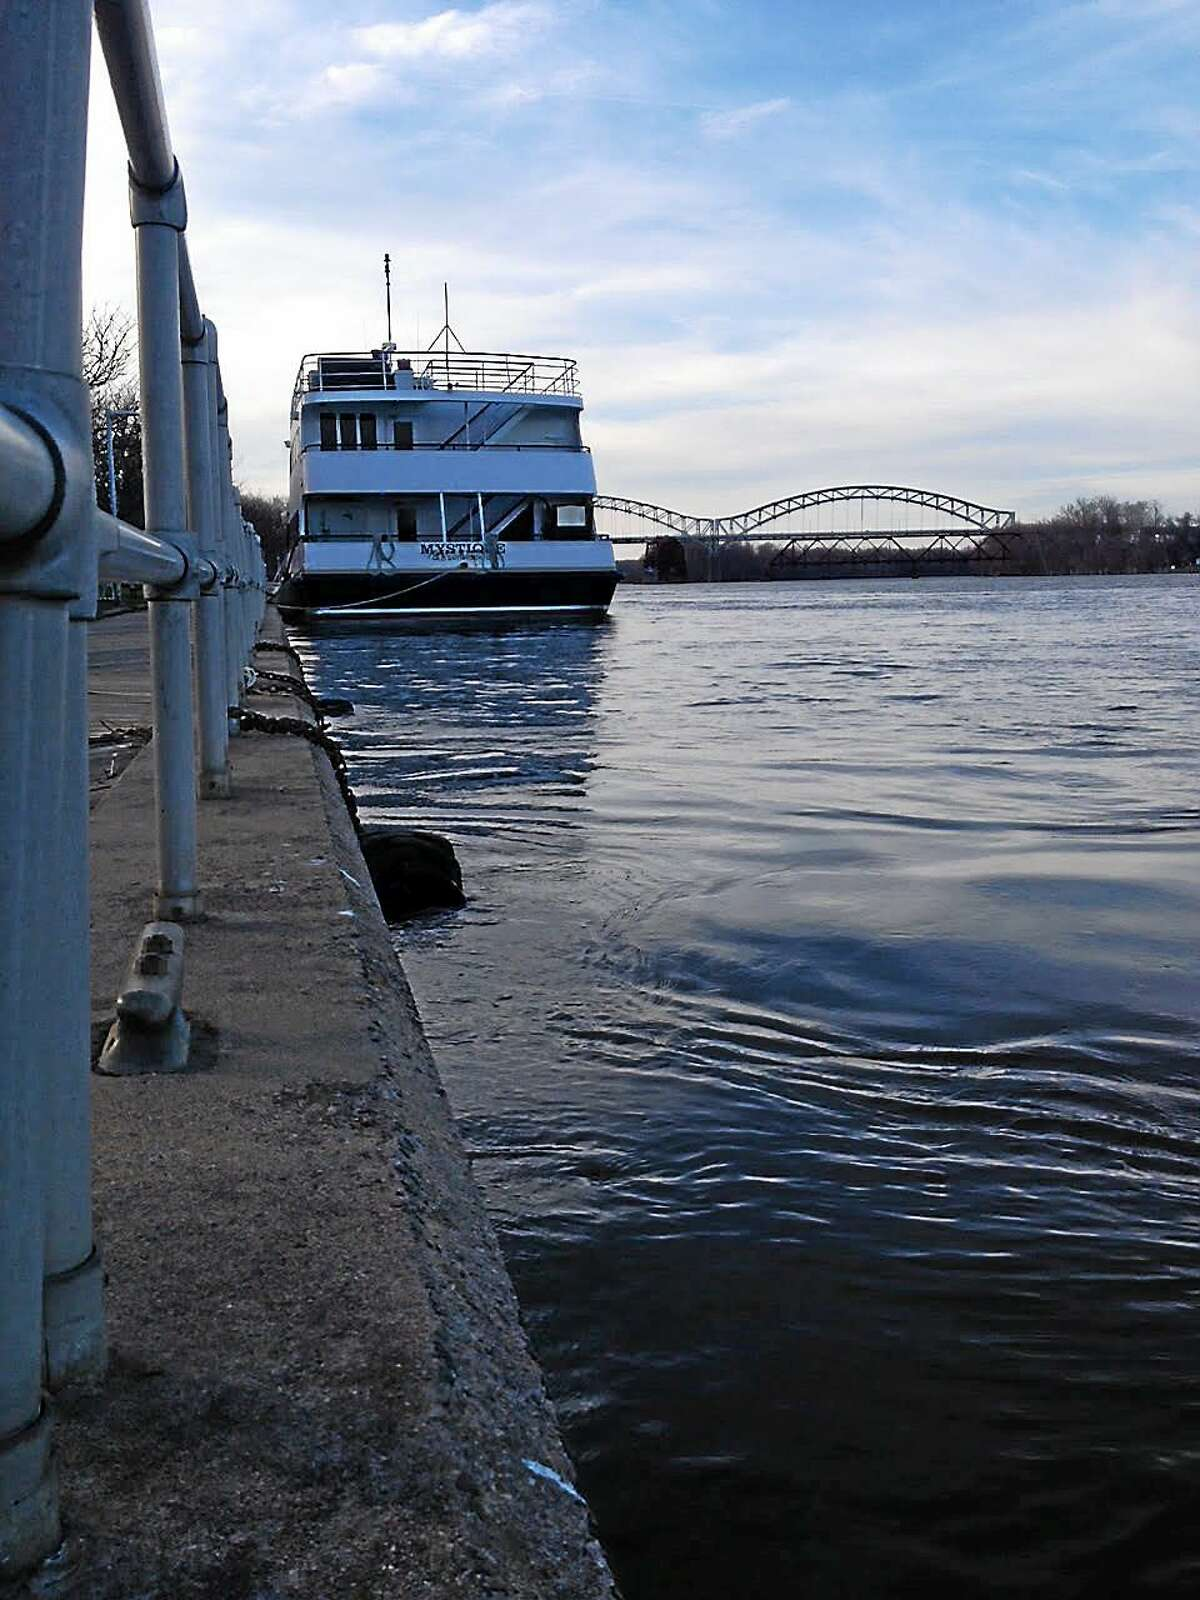 The state grant will help finance environmental assessments, project design and environmental remediation along the Connecticut River.